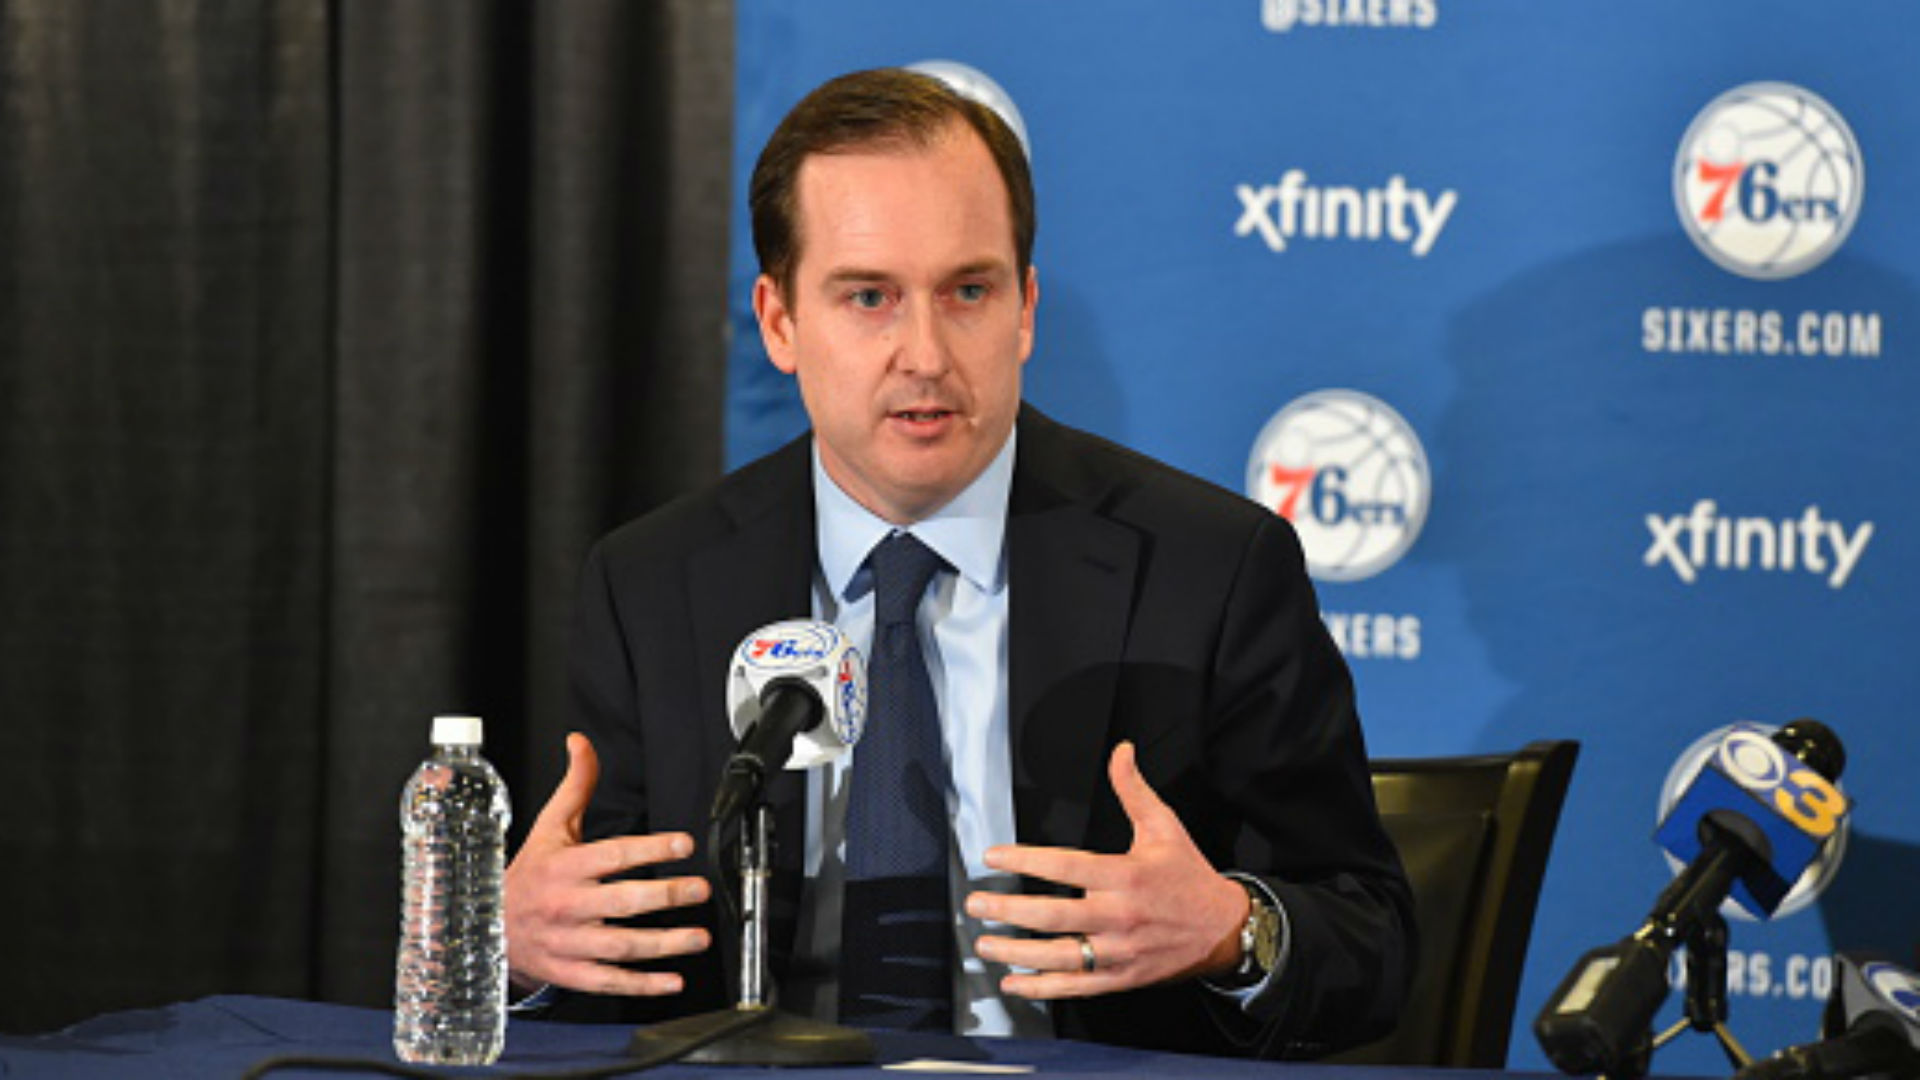 Former 76ers GM Sam Hinkie meets with Broncos, provides analytics advice, report says